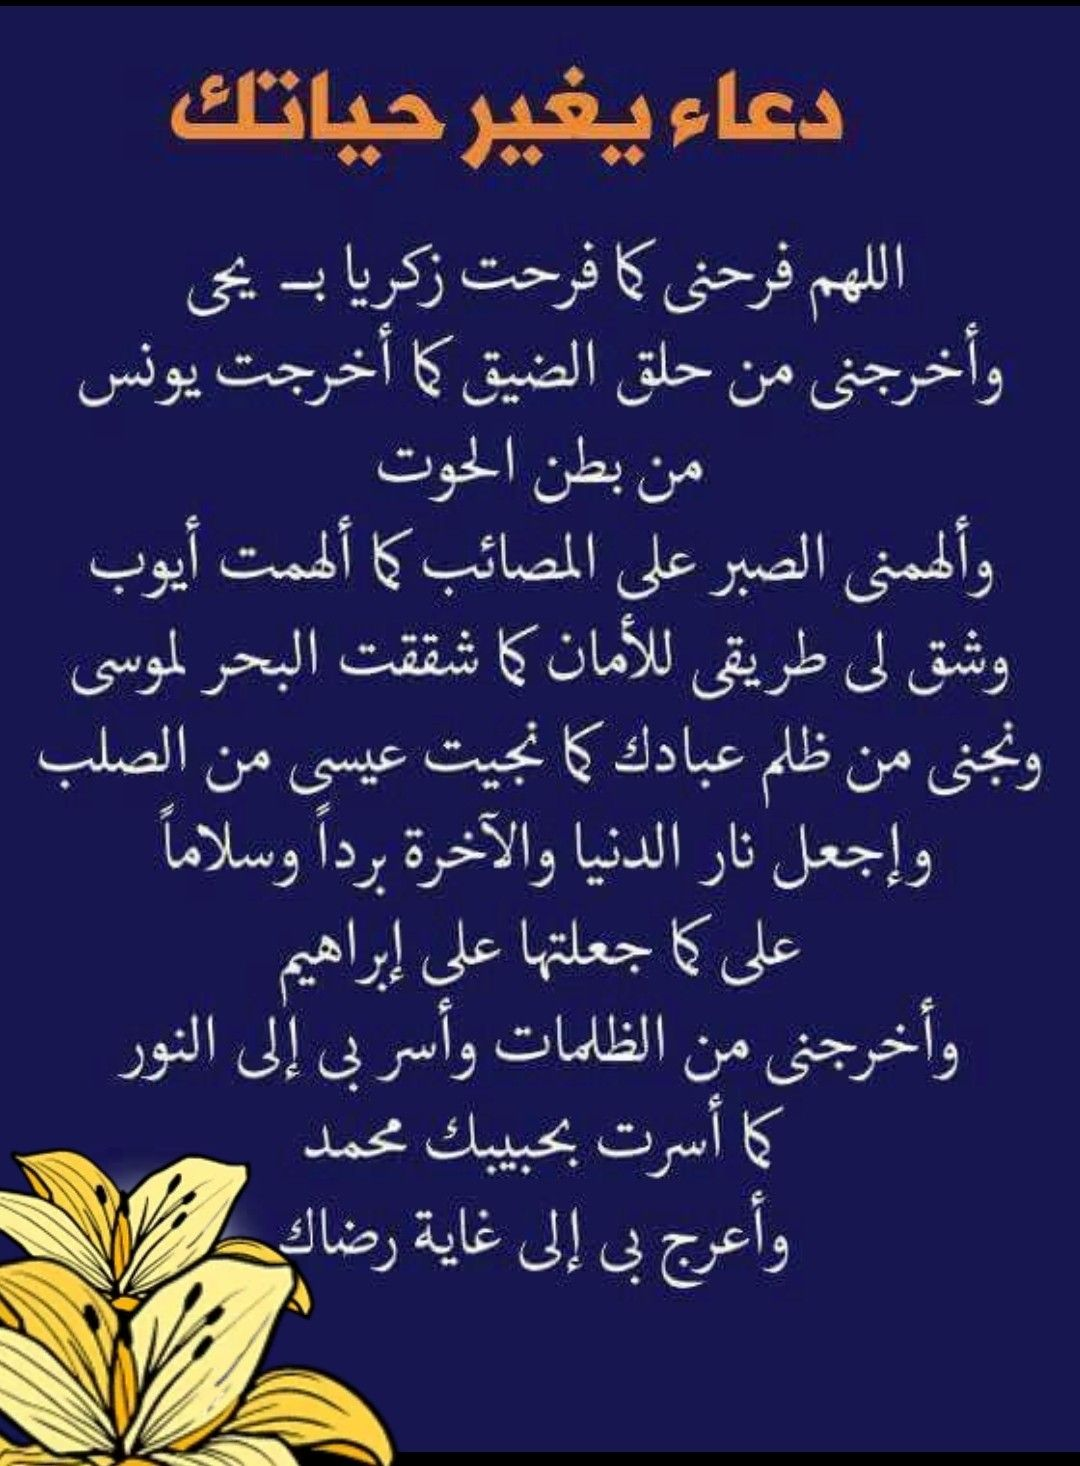 Pin By Amna Issawi On ادعية Quotes Islam Quran Quran